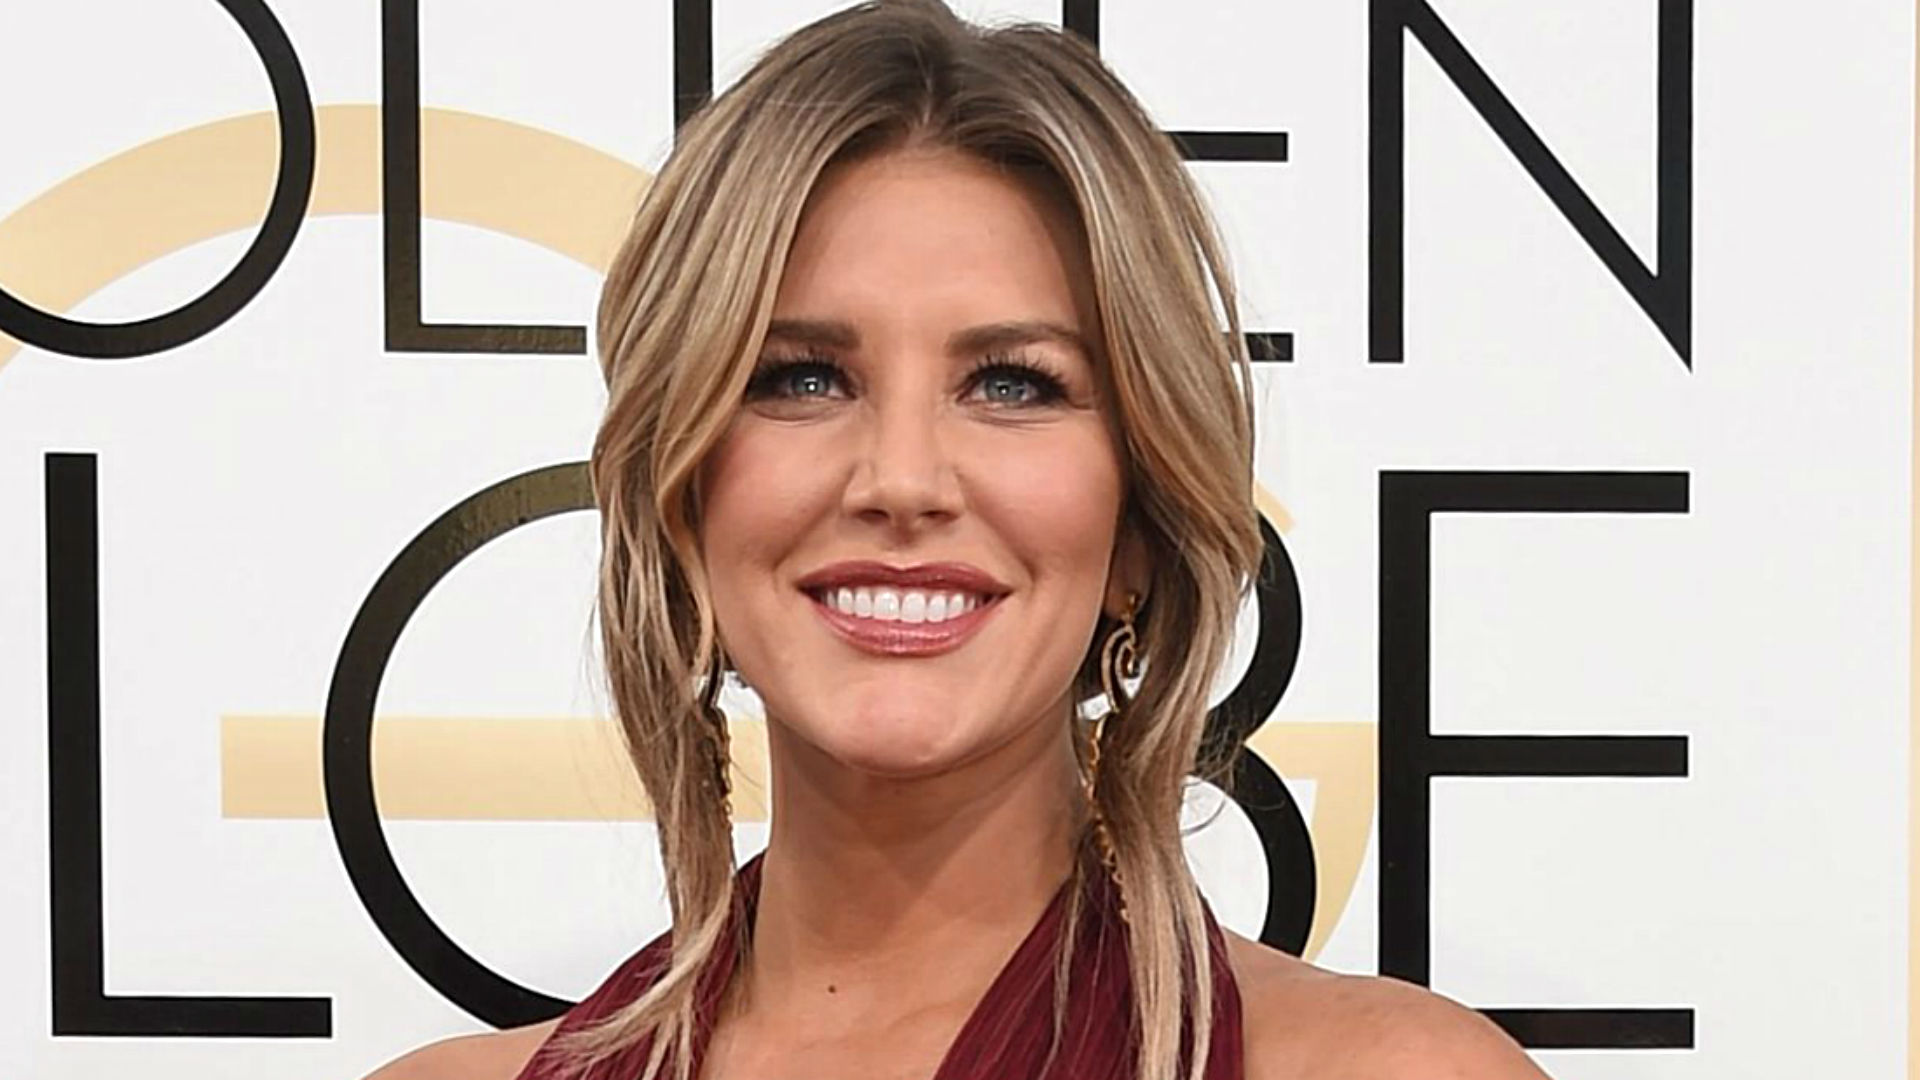 Fox Sports Absolutely Wants To Keep Charissa Thompson From Returning To Espn Sporting News